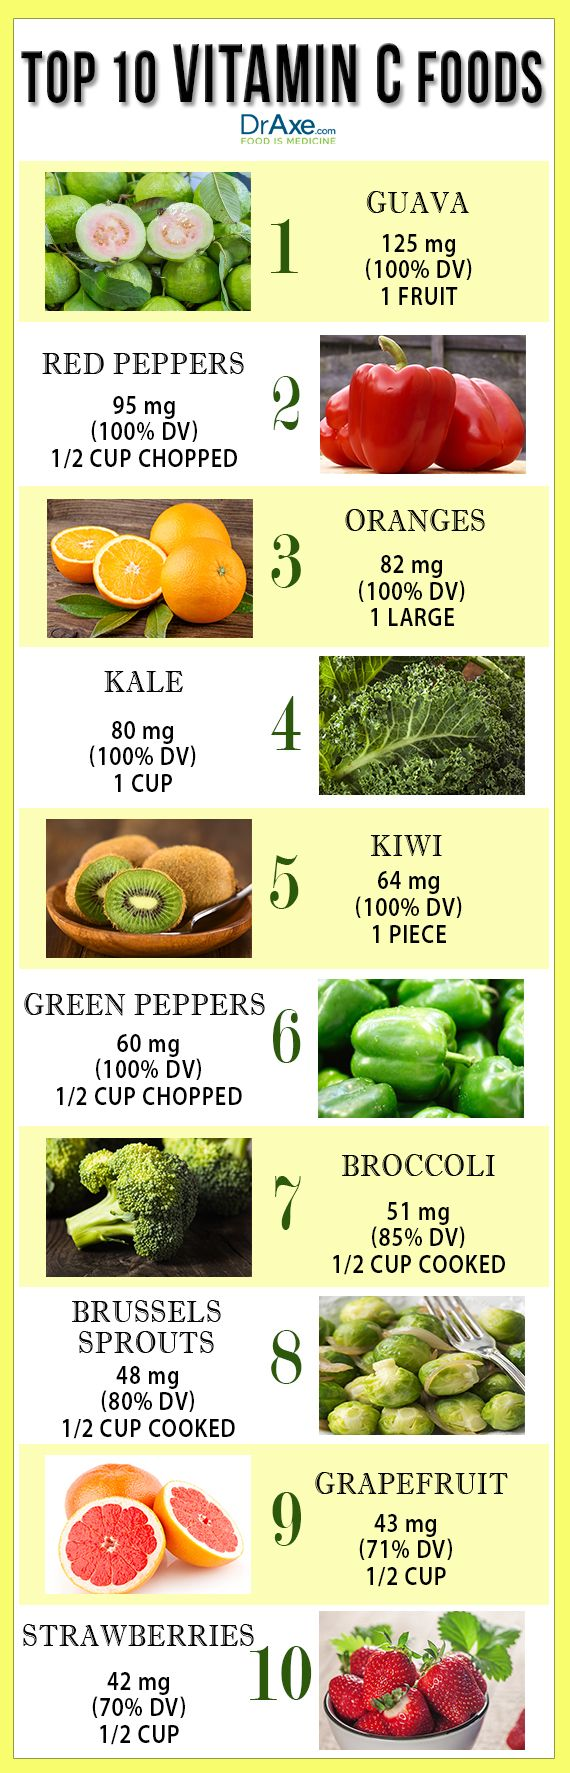 Vitamin c foods benefits